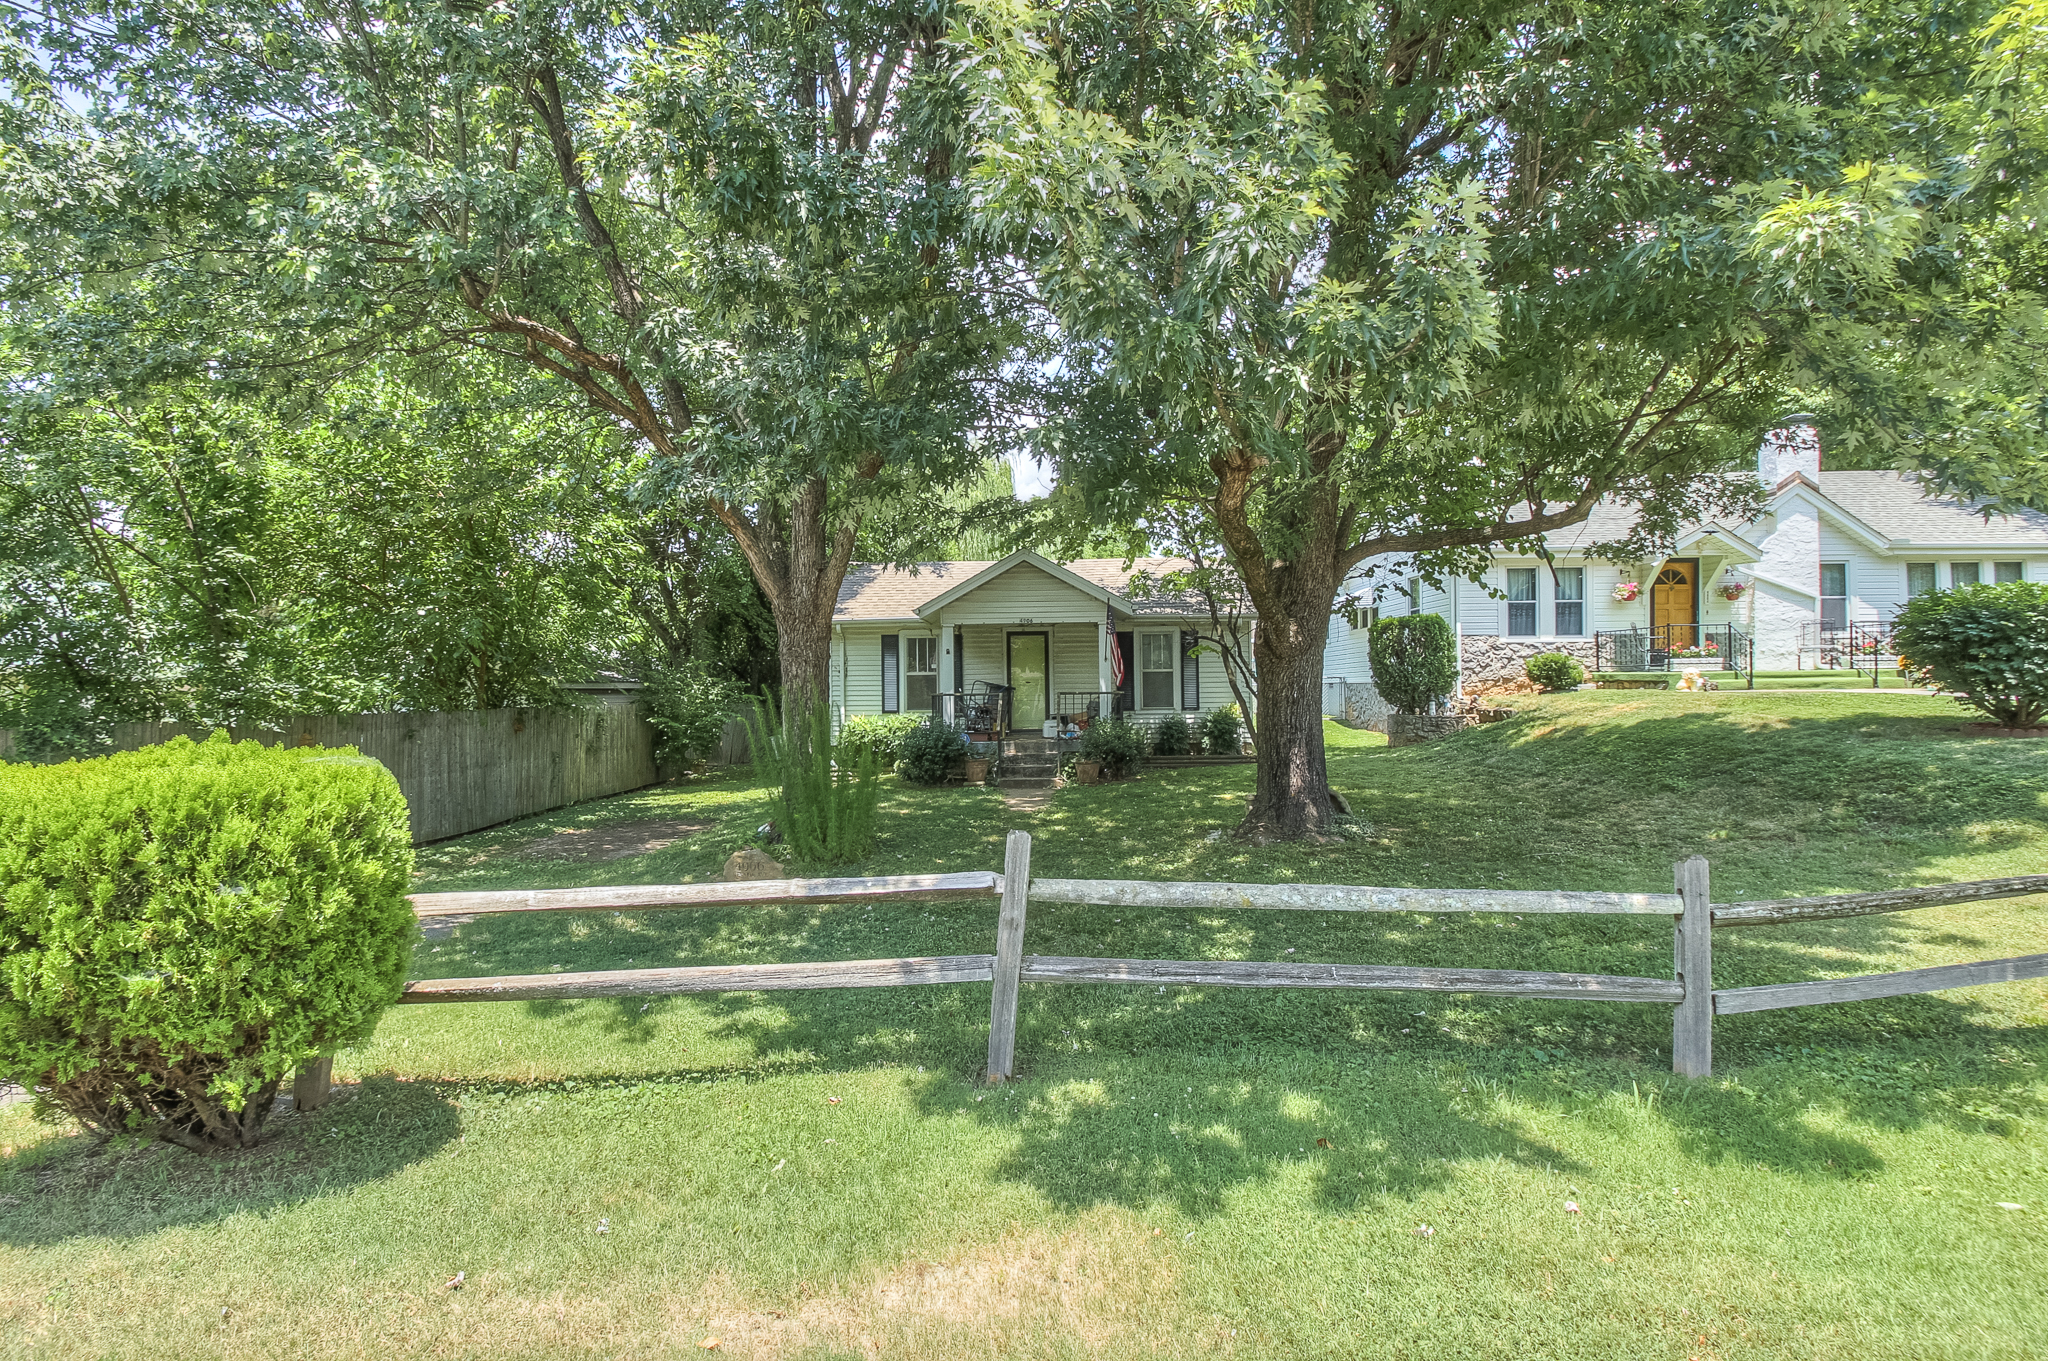 Single Family Home for Sale at Great Area, Amazing Potential 4905 Nevada Avenue Nashville, Tennessee, 37209 United States